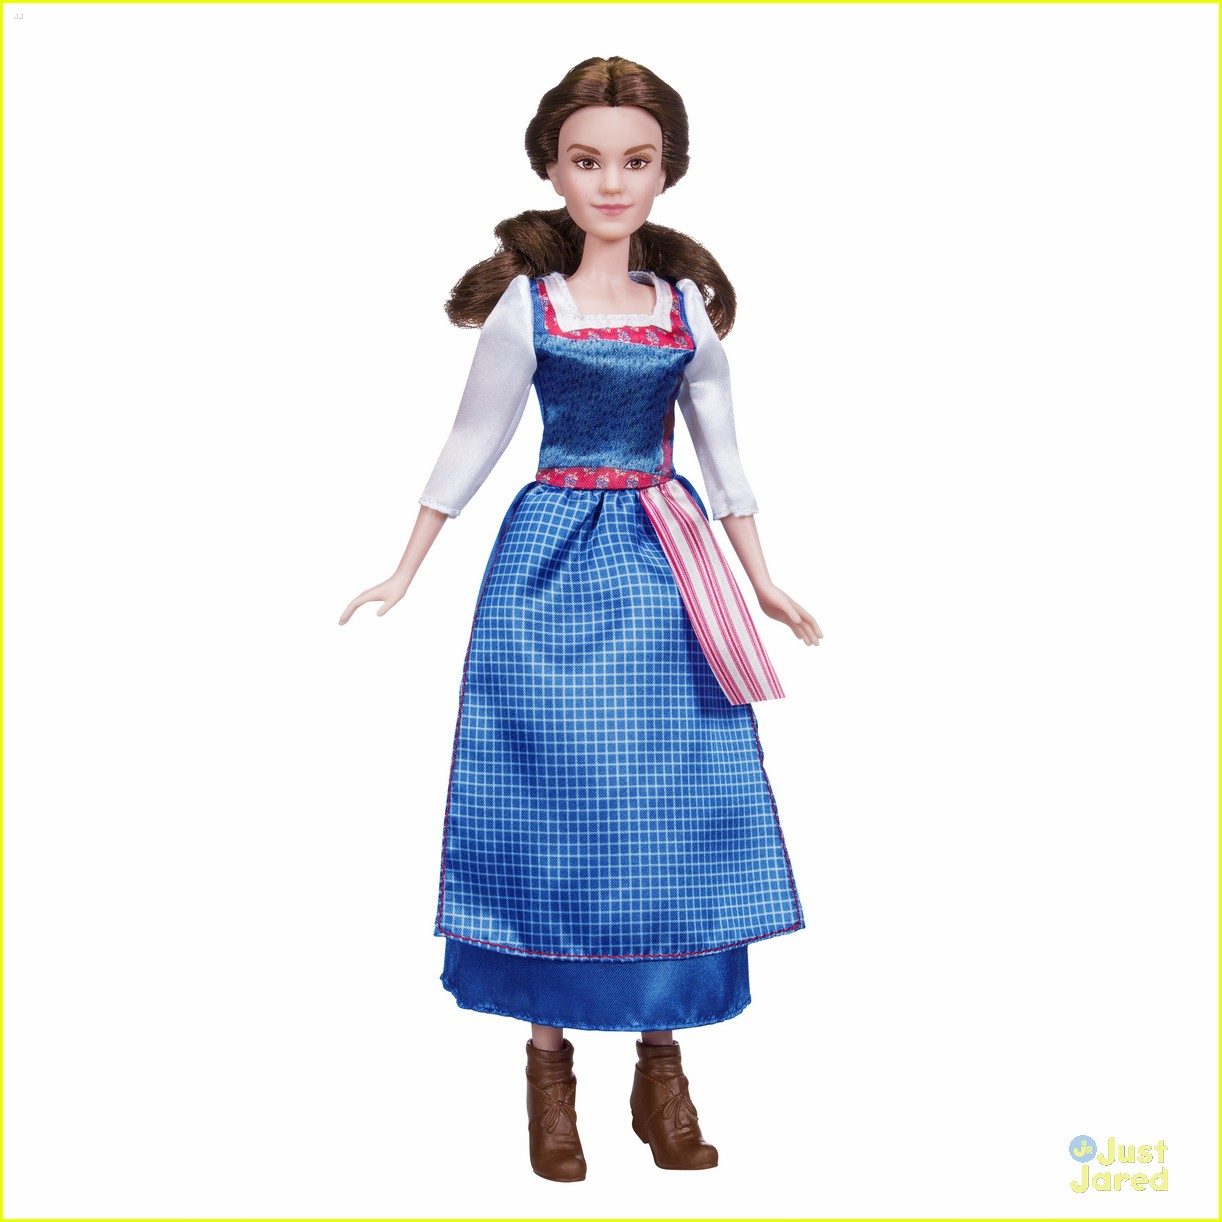 beauty beast doll collection contest 03